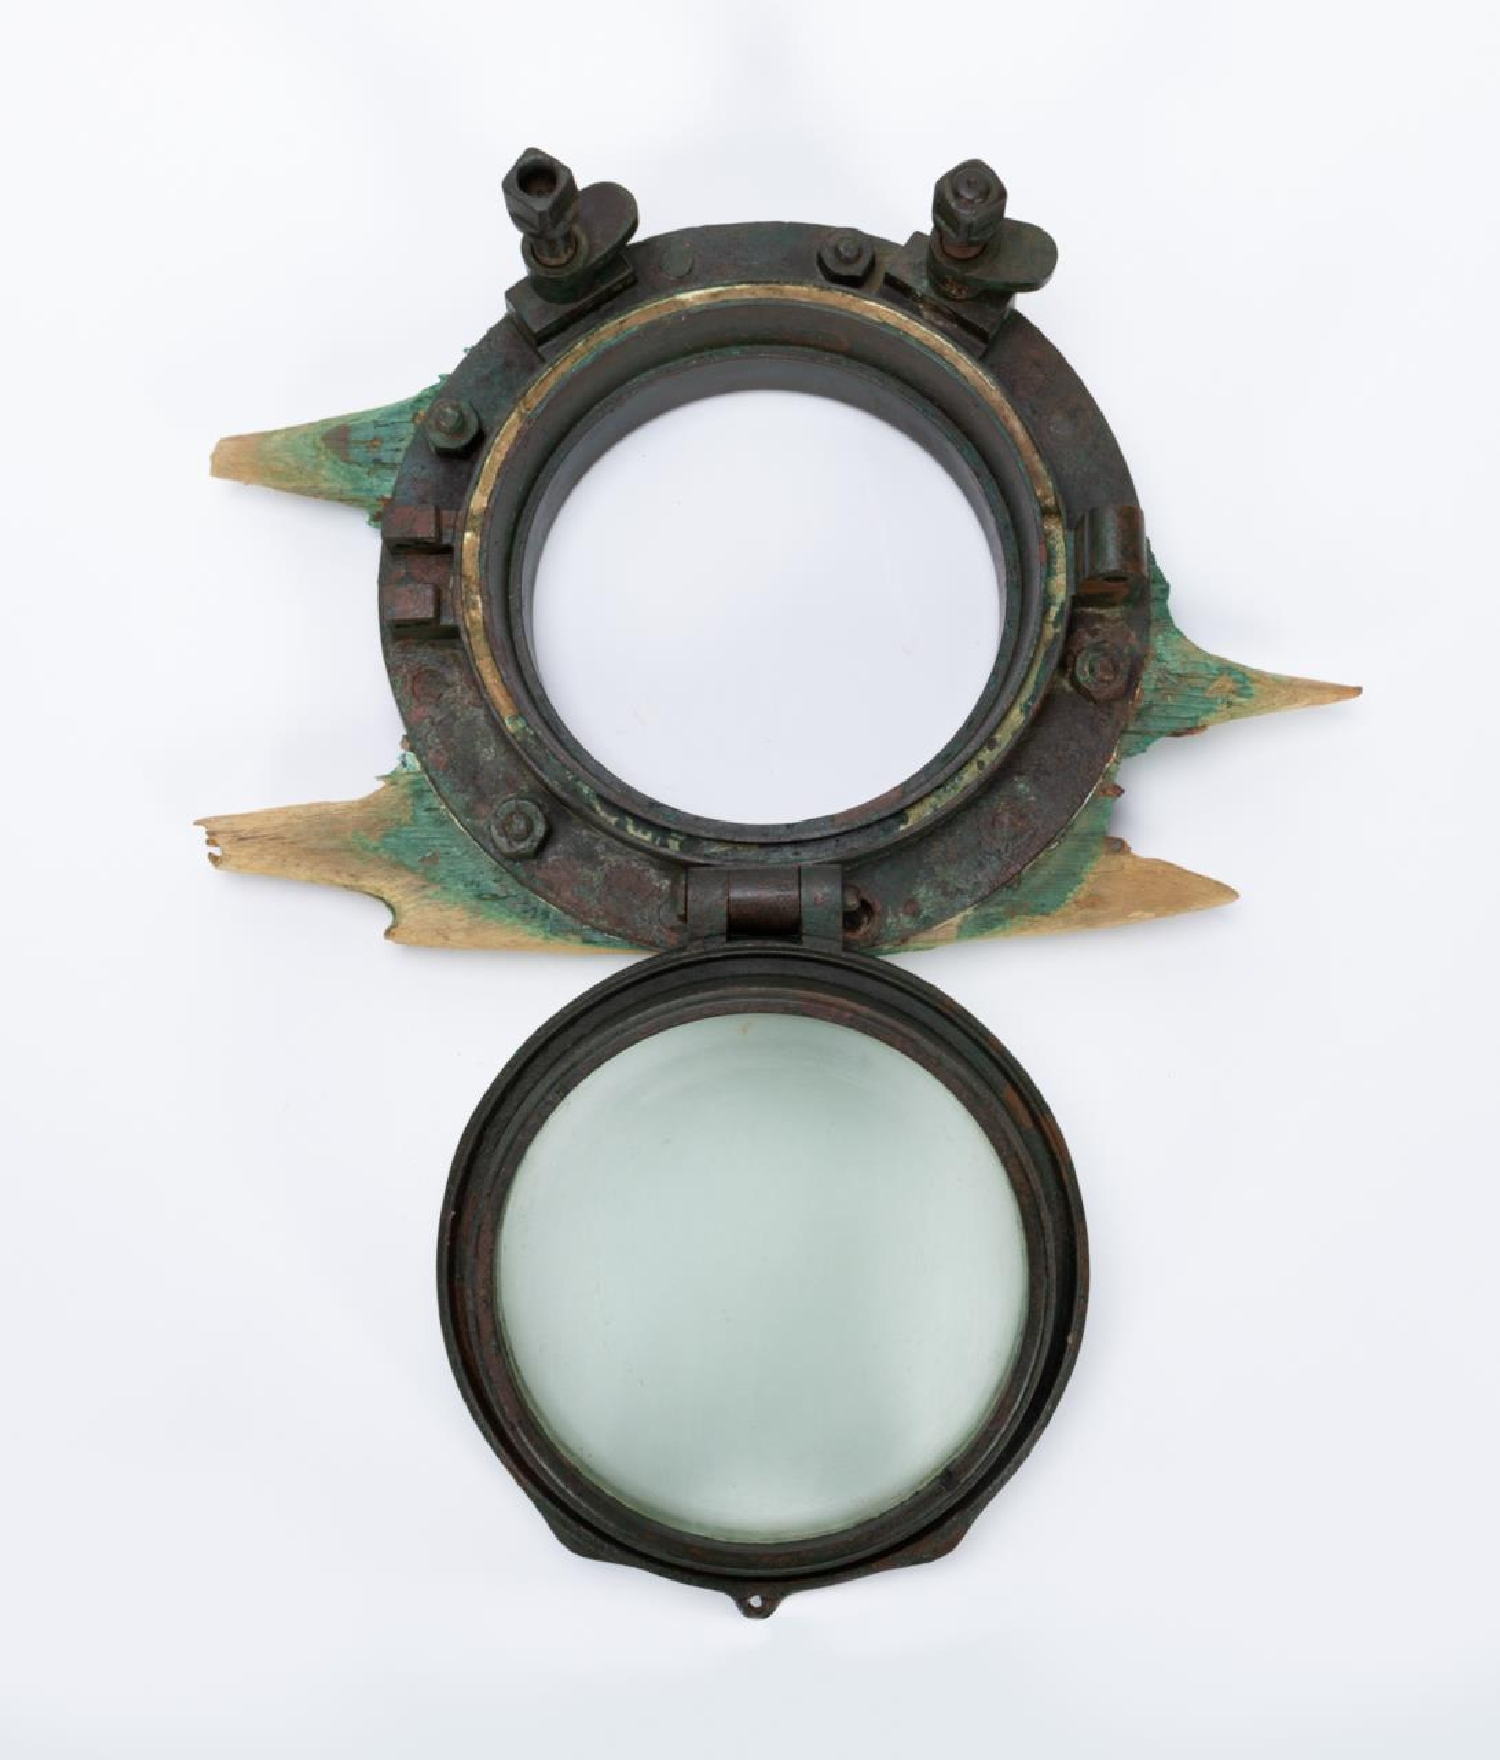 RMS CARPATHIA, SALVAGED PORTHOLE WITH PARTIAL WOOD - Image 4 of 5